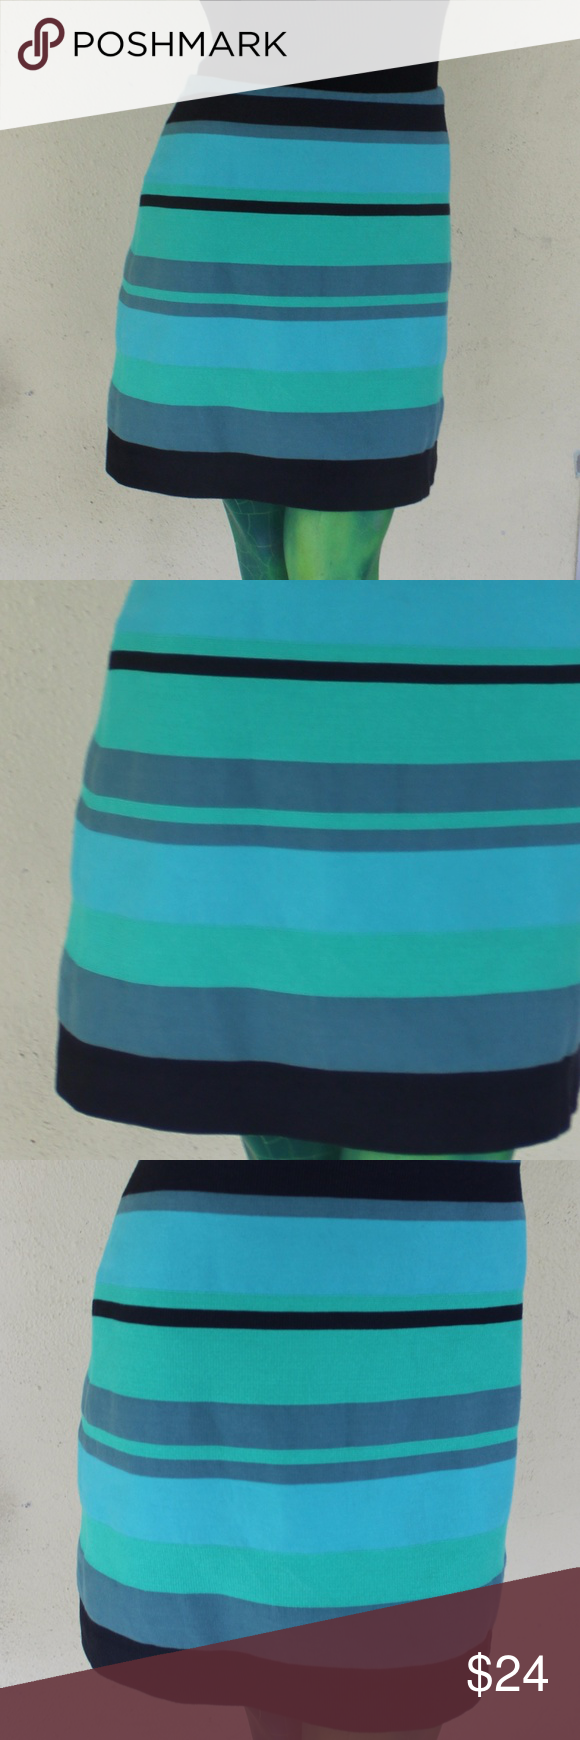 "Ann Taylor LOFT striped skirt Lovely shorter pencil skirt with stripes of green, gray, turquoise, and black. Invisible back zipper Fully lined. 92% cotton, 8% nylon. Lining 100% acetate. Length from waist: 17.5"" Create your own bundle for additional savings! LOFT Skirts"